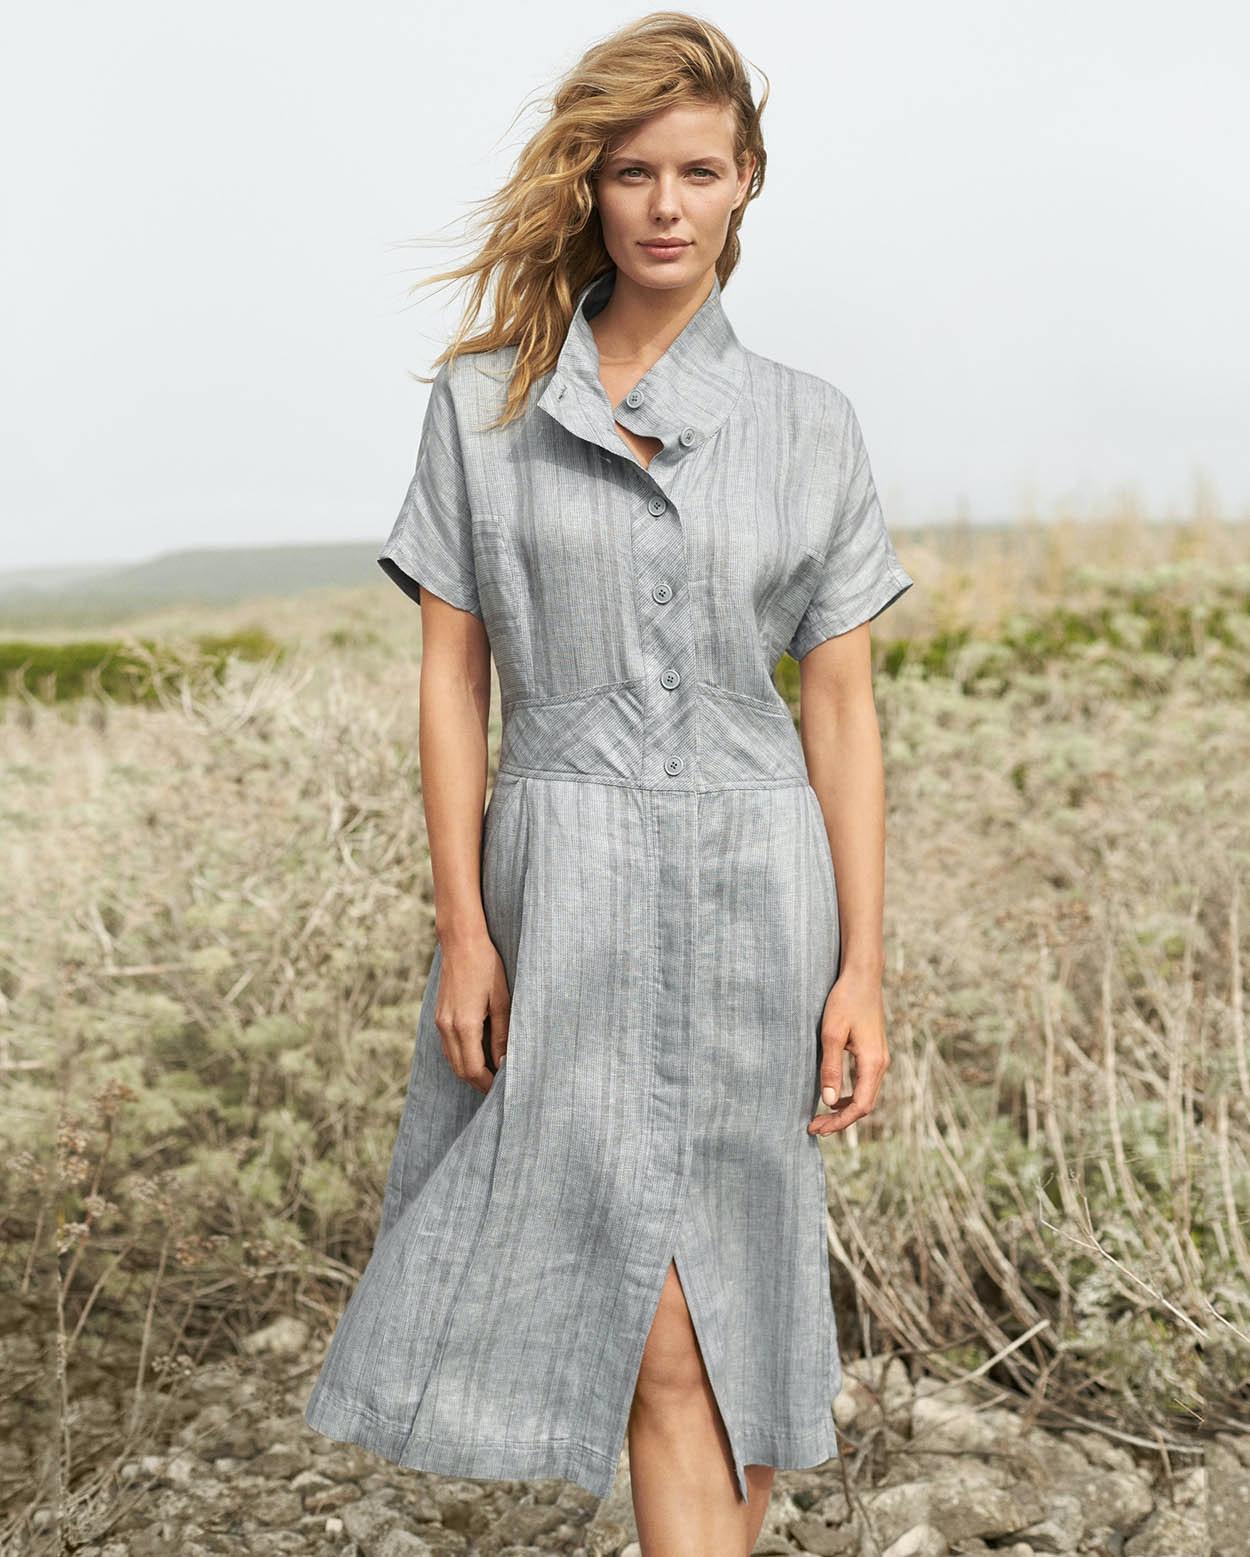 fd3f355f8 Image of Striped linen dress